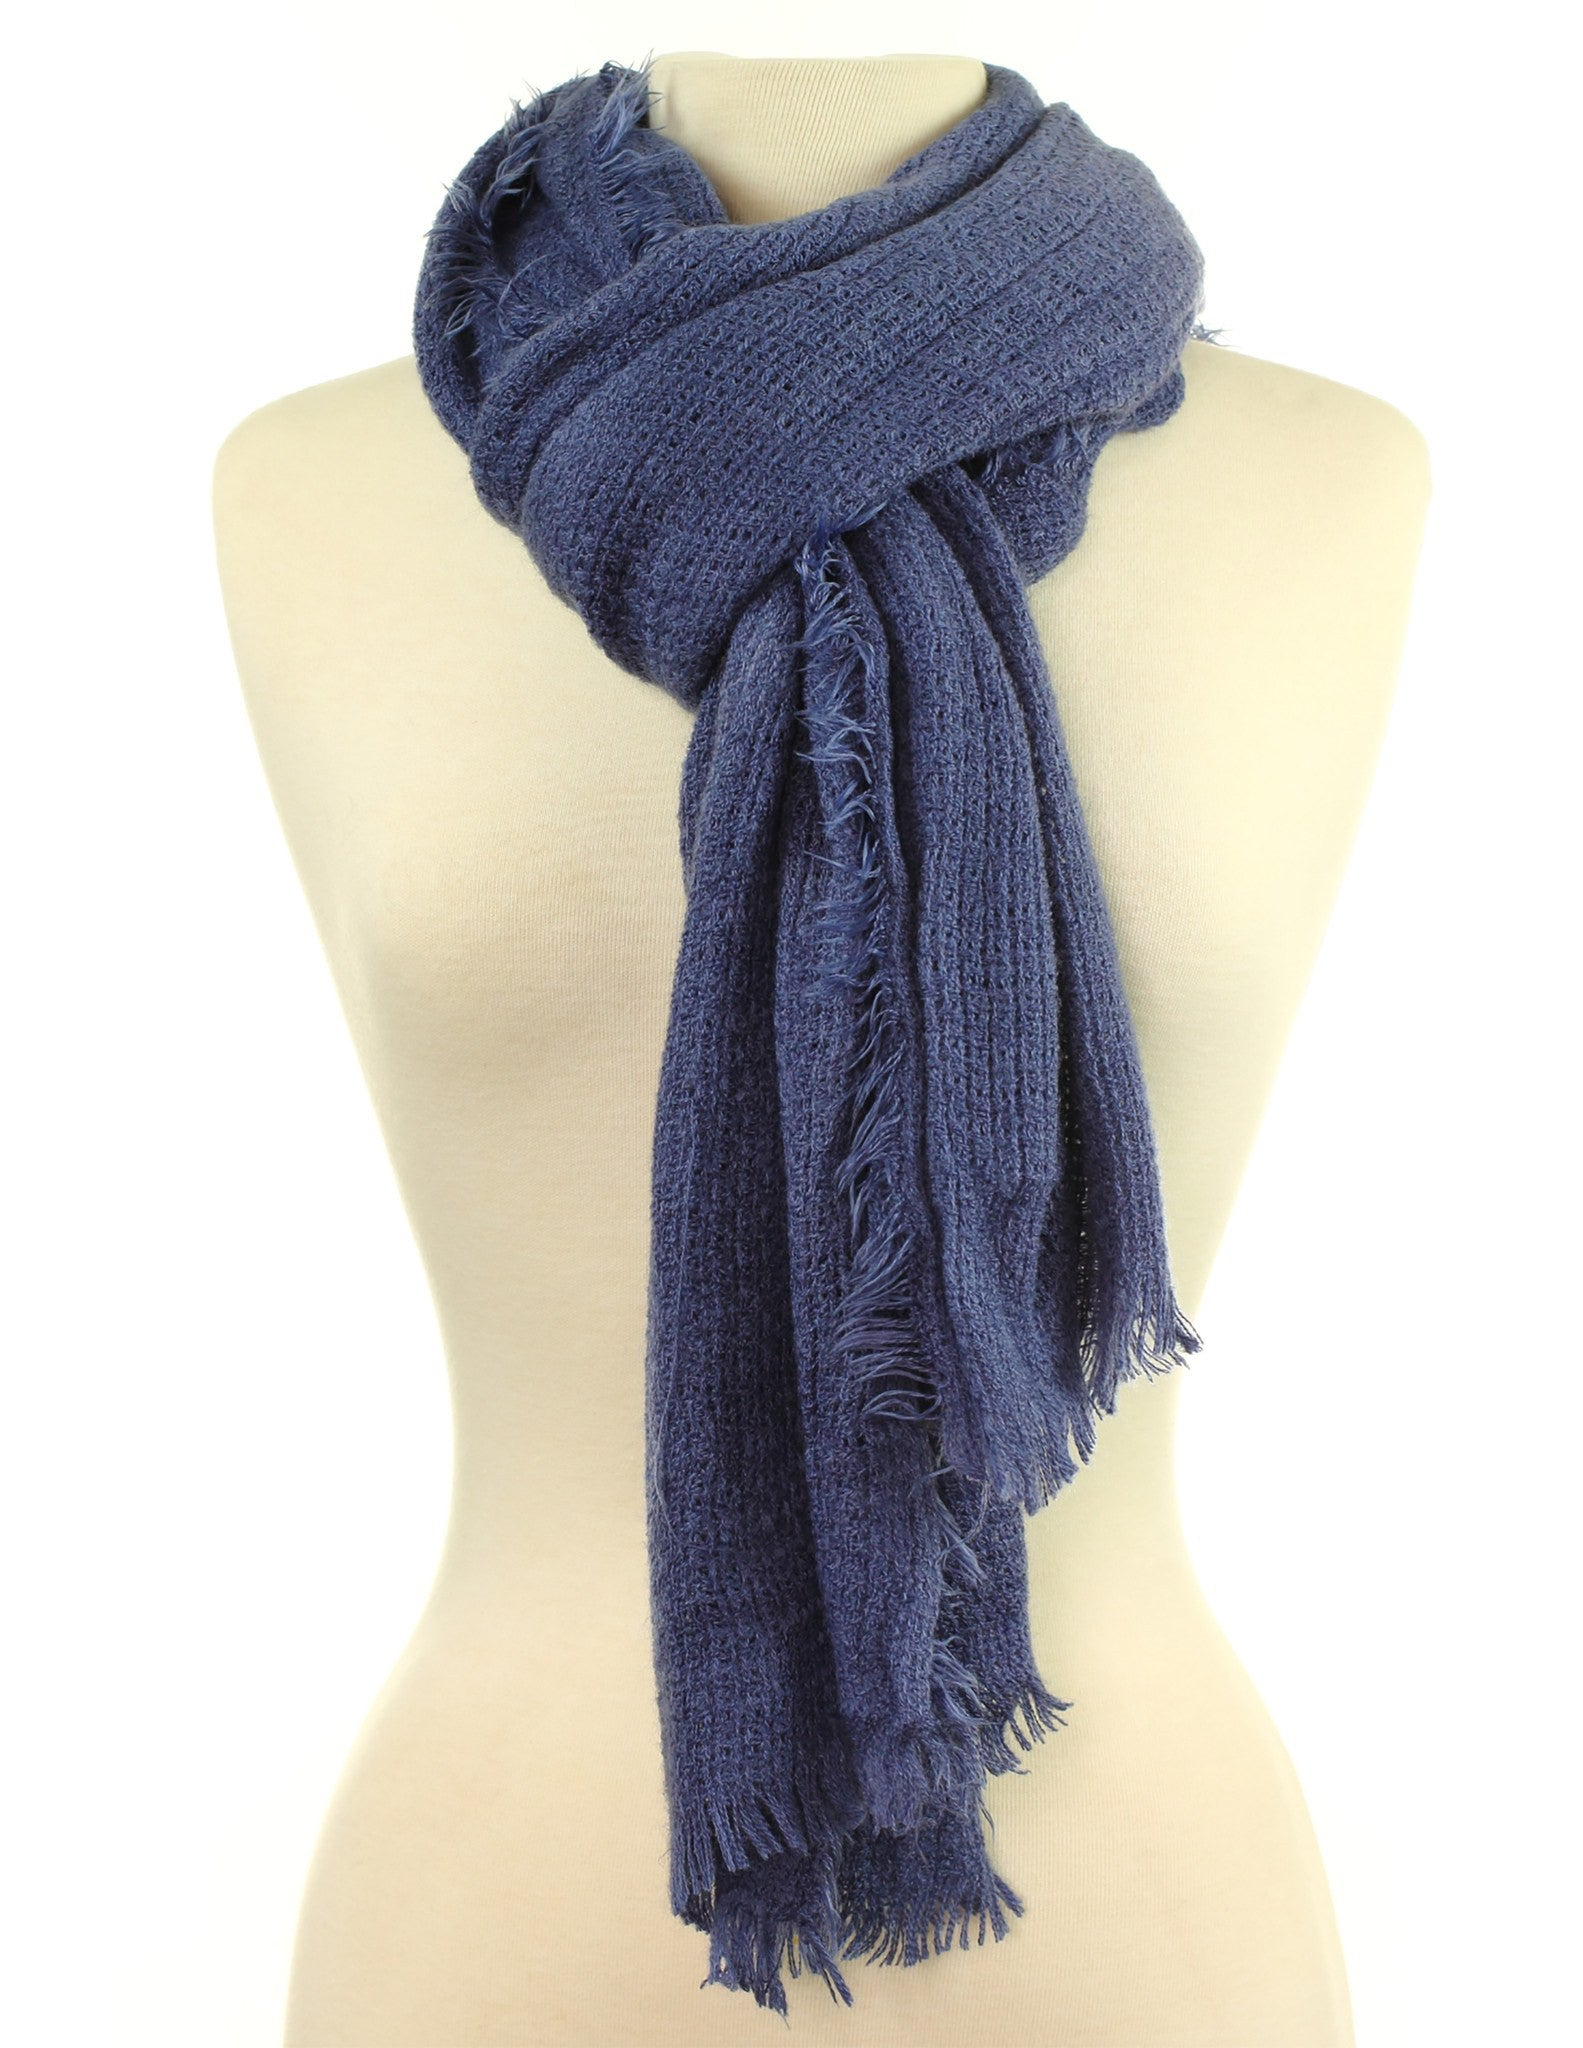 'Toasty' Warm Soft Premium Winter Scarf